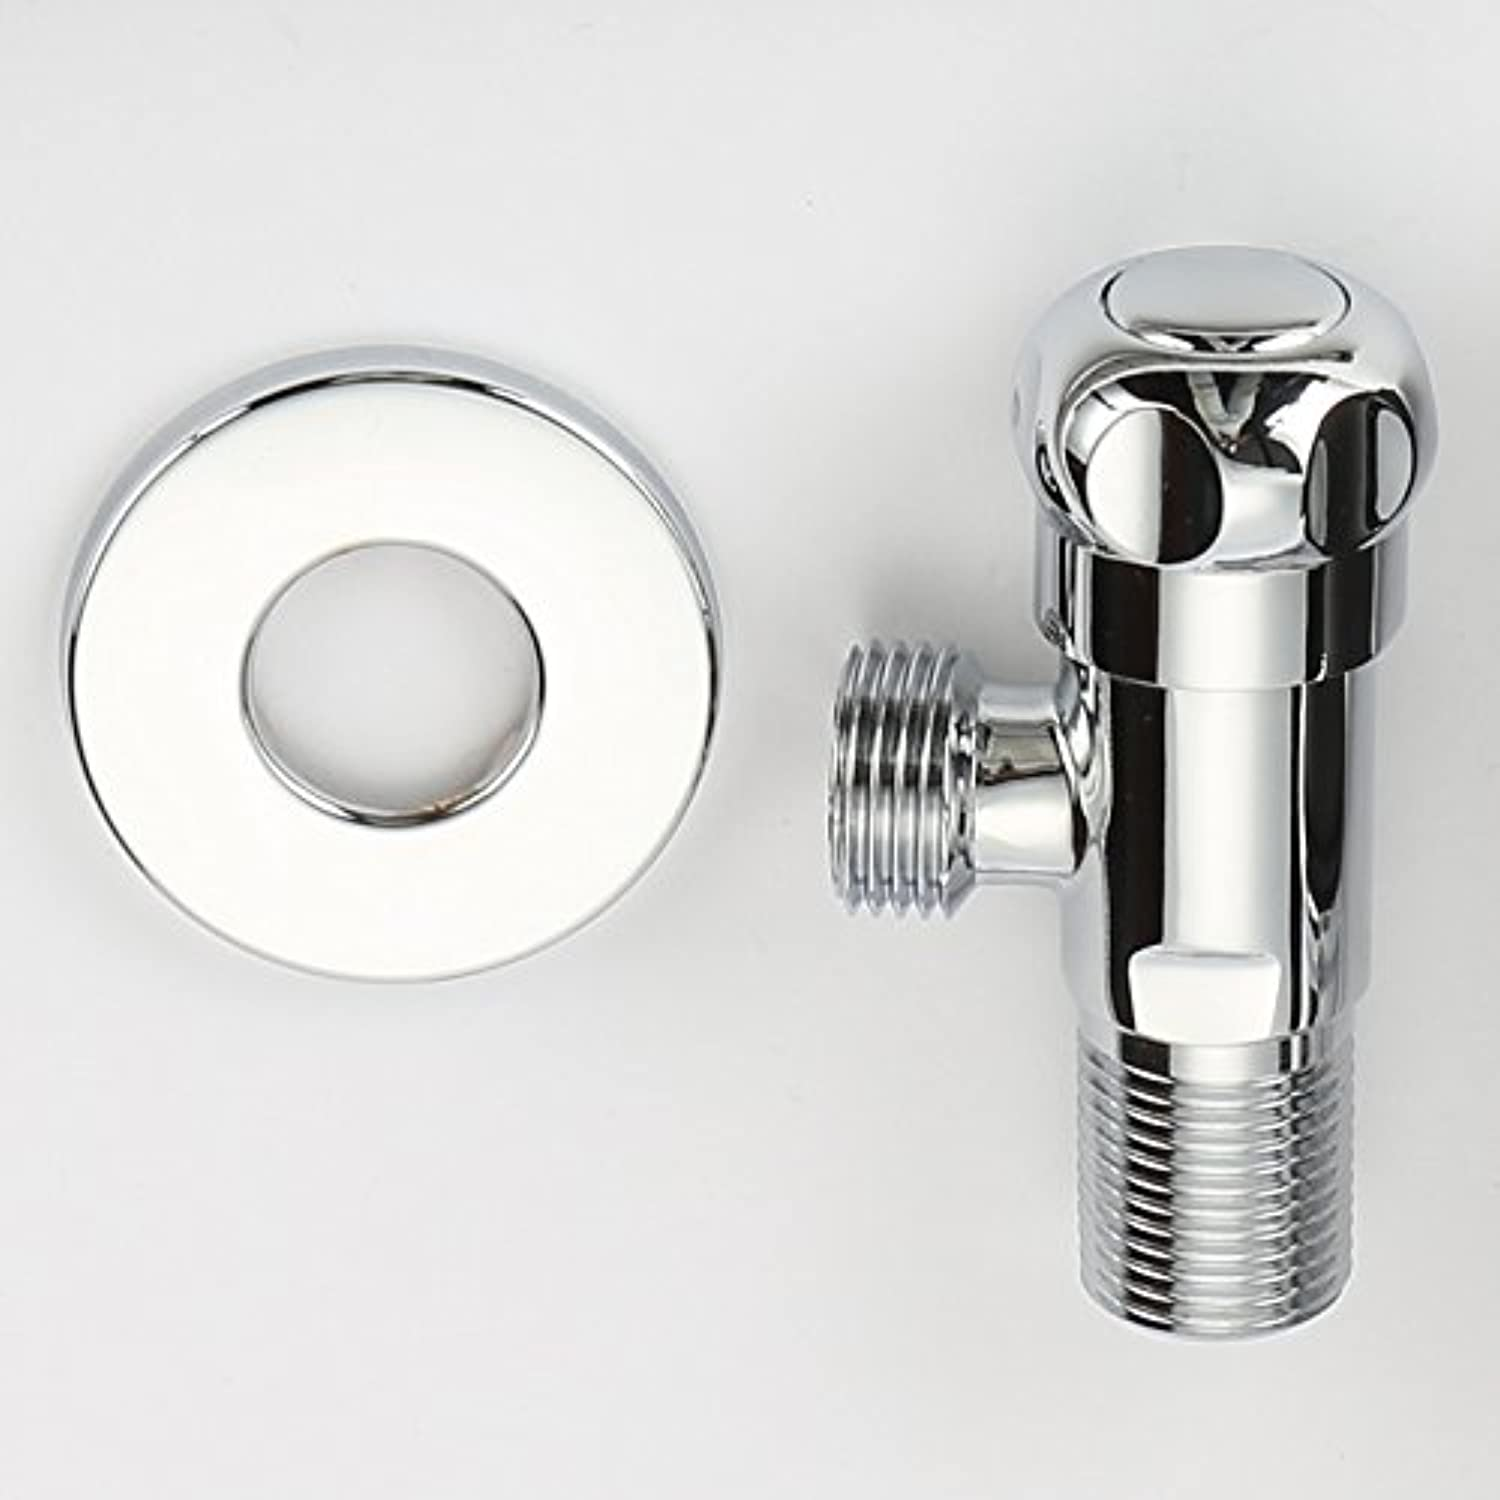 CZOOR Brass Chrome Plate Polished Kitchen Bathroom Accessories Angle Valve For Toilet   Sink   Basin   Water Heater Angle Valves